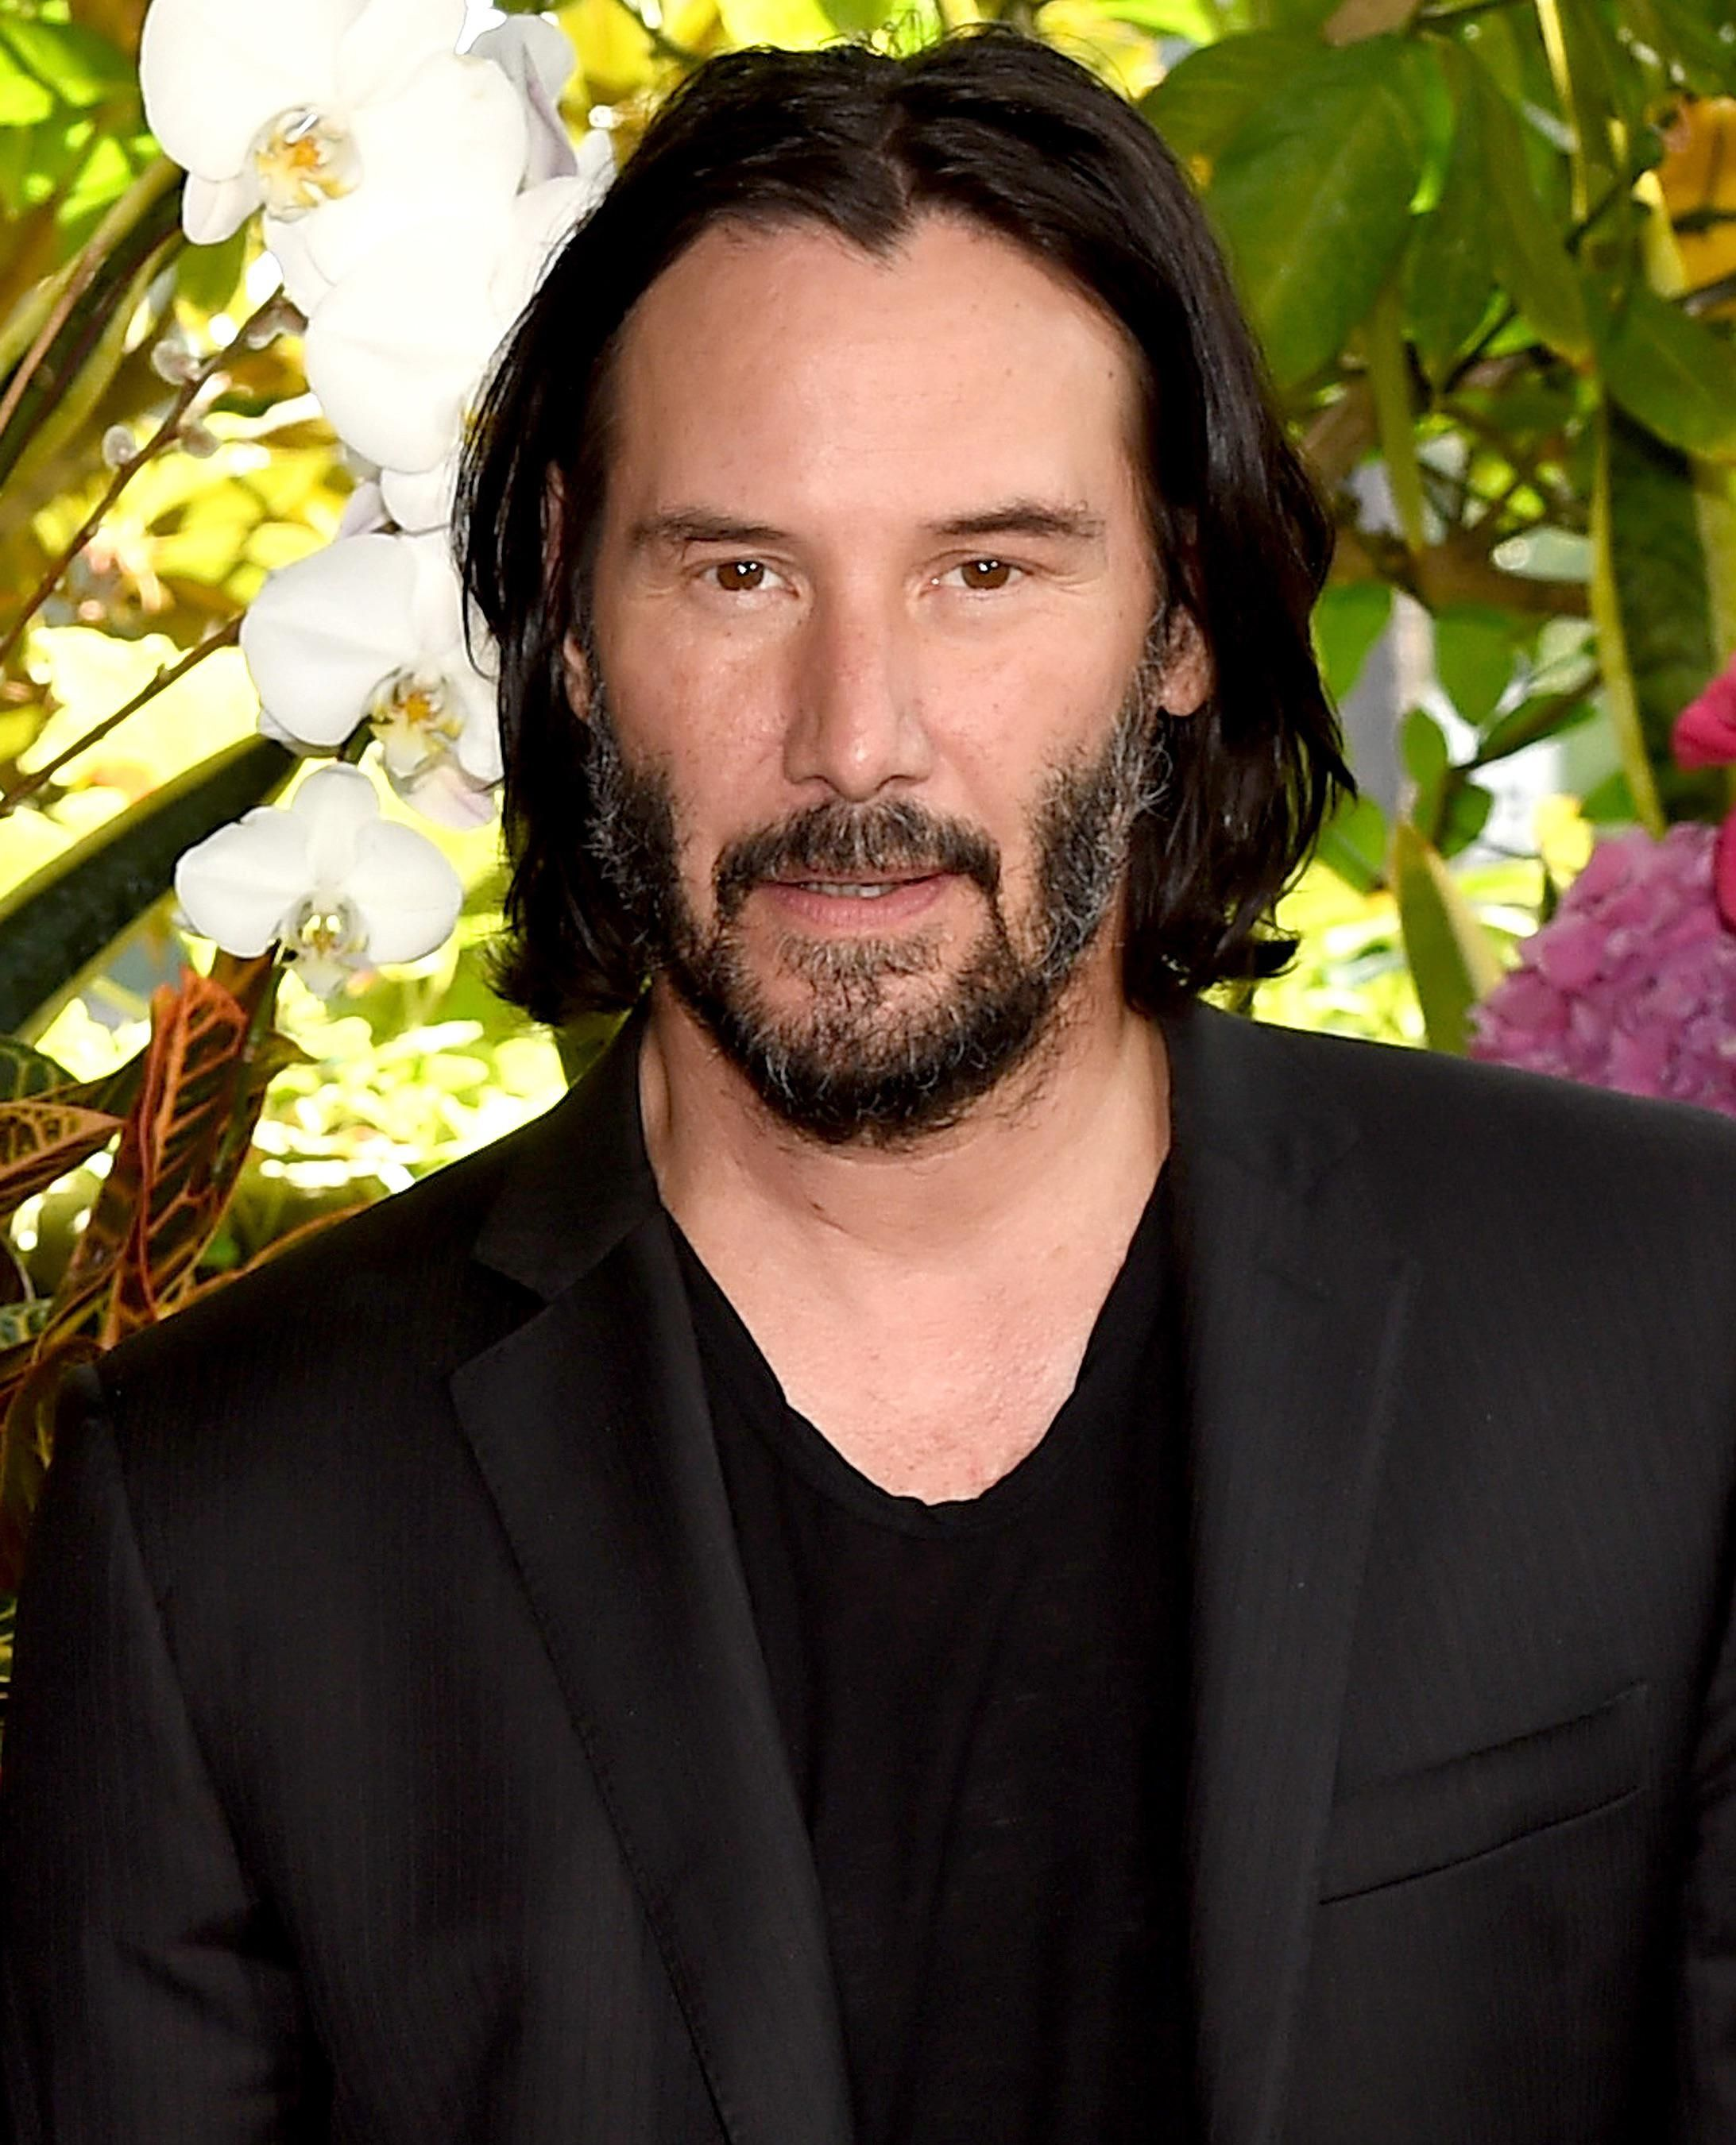 I used FaceApp to age Keanu Reeves.